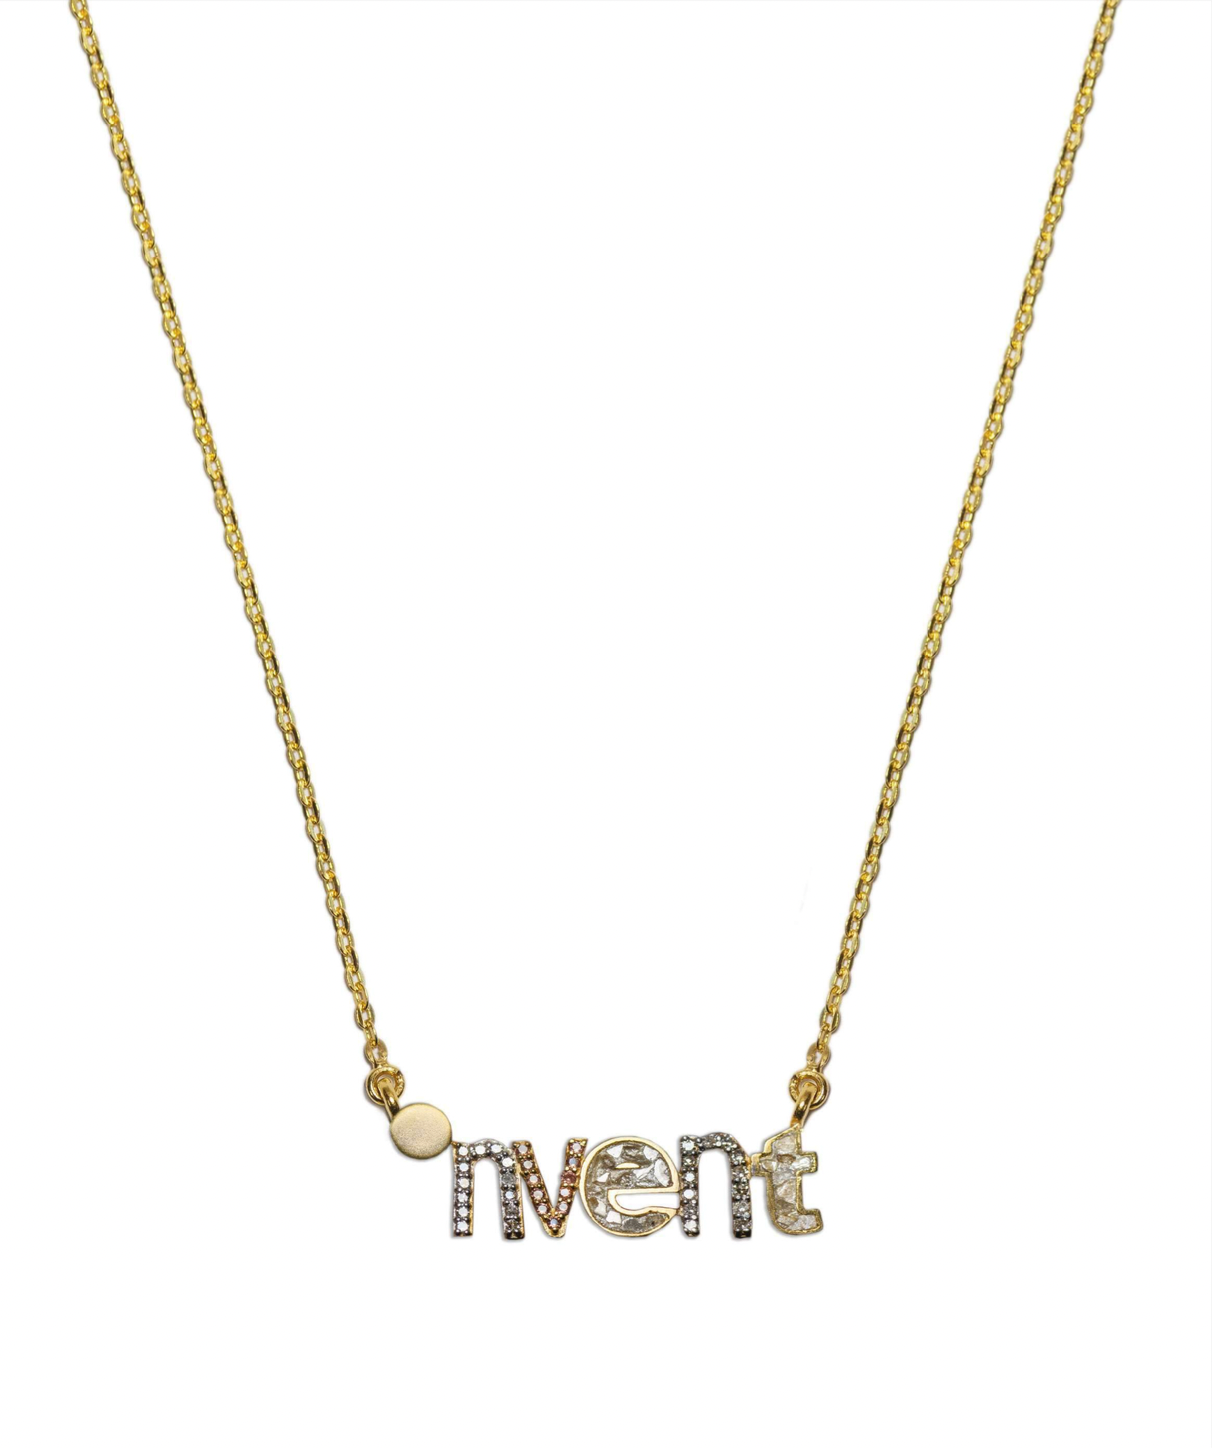 invent word pendant necklace